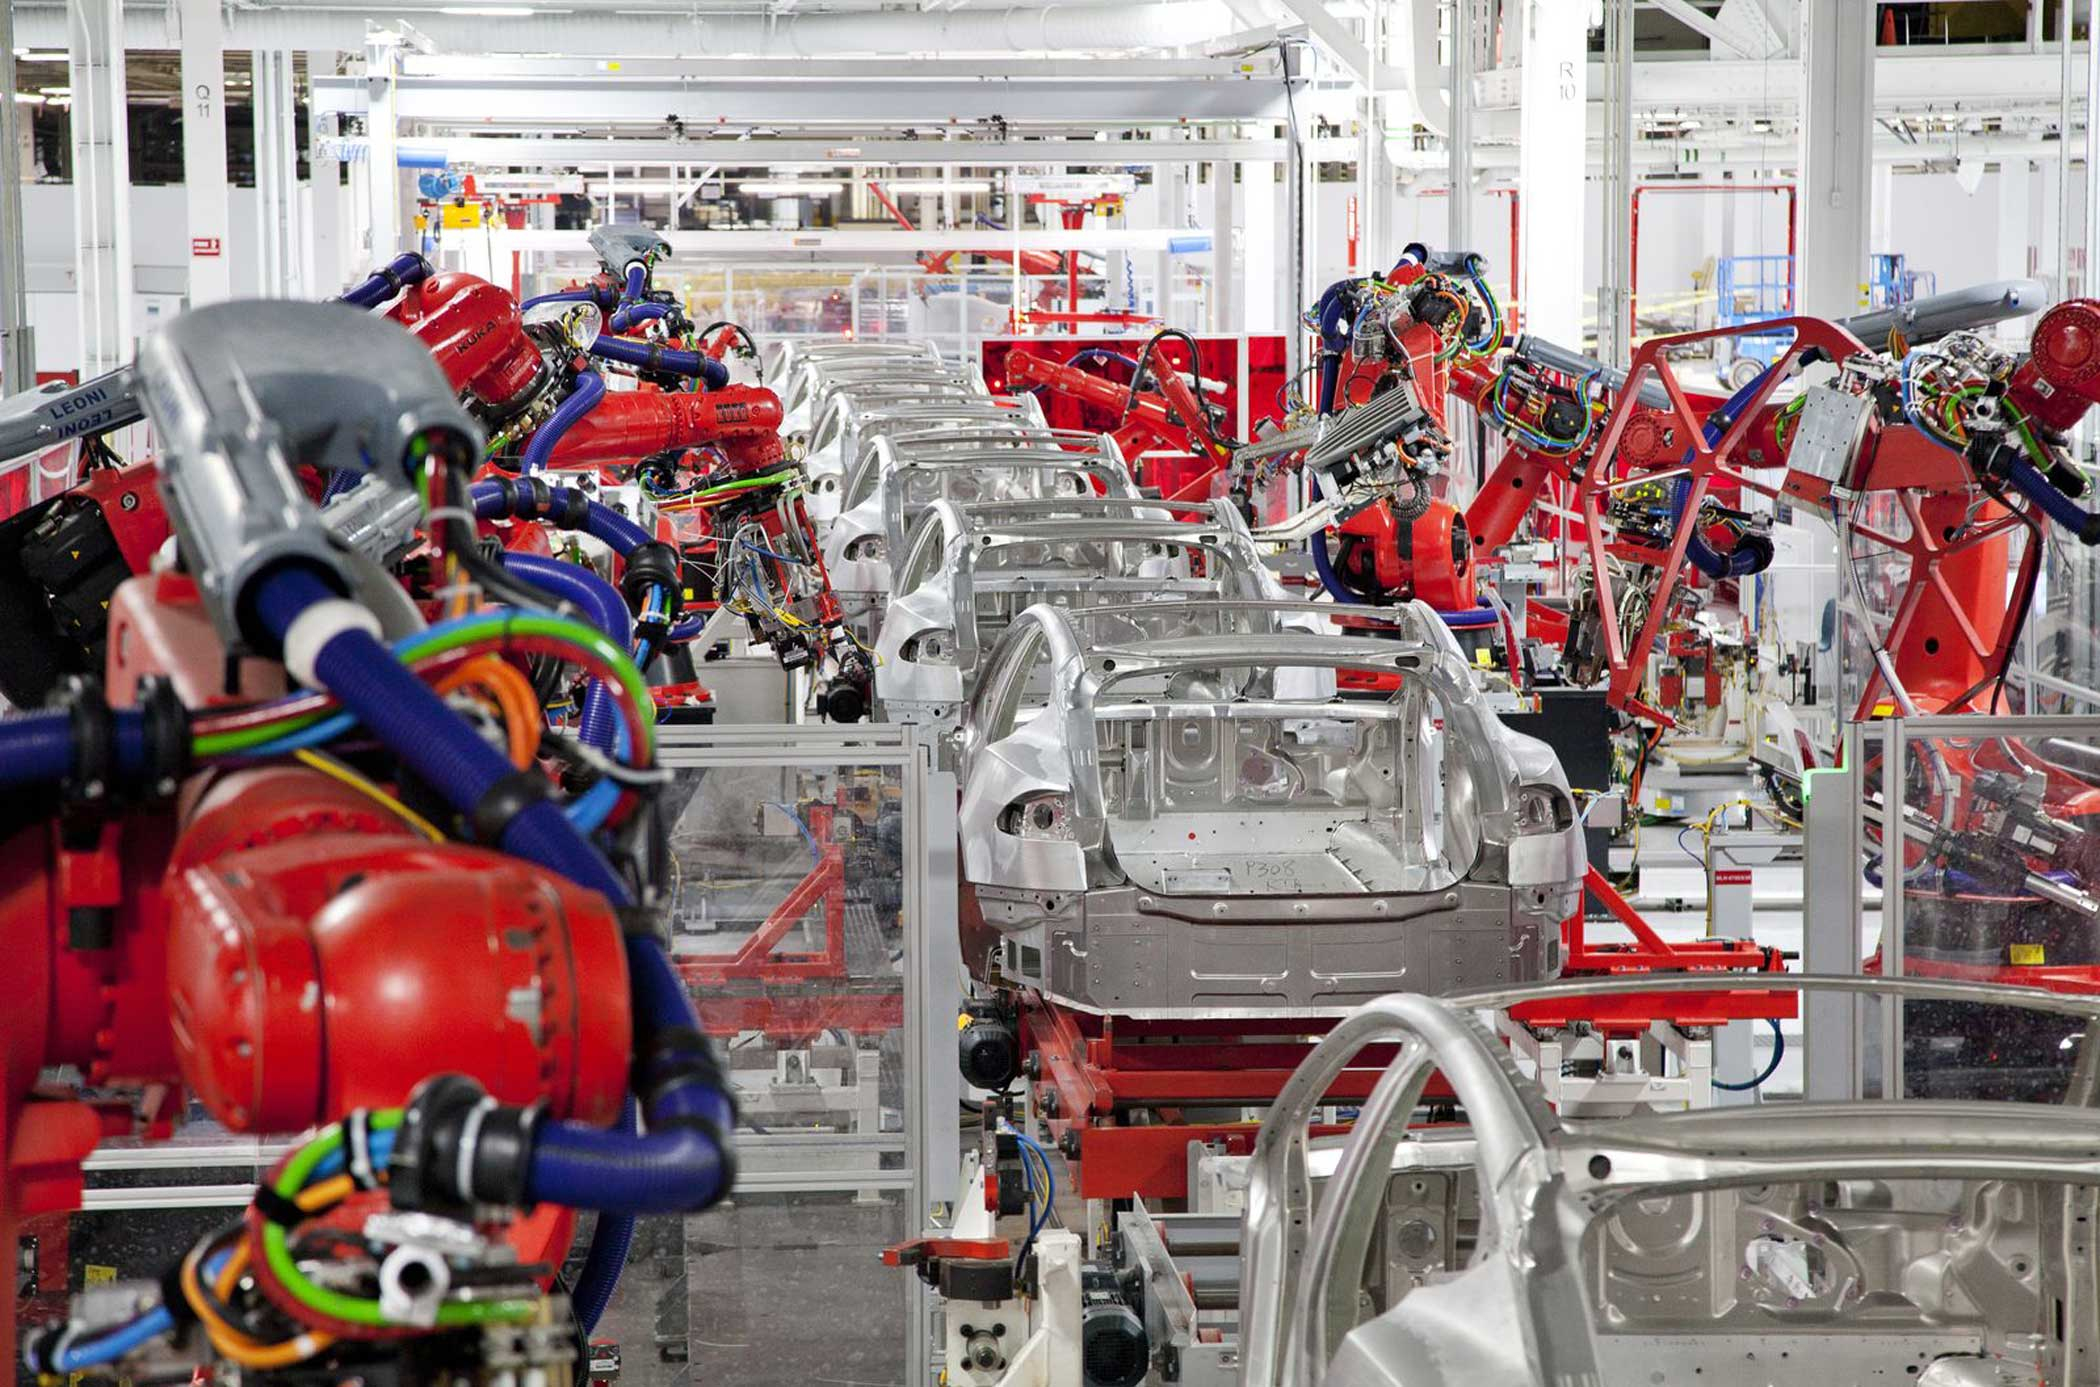 Model S cars on the assembly line at the Tesla Factory in Fremont, Calif.